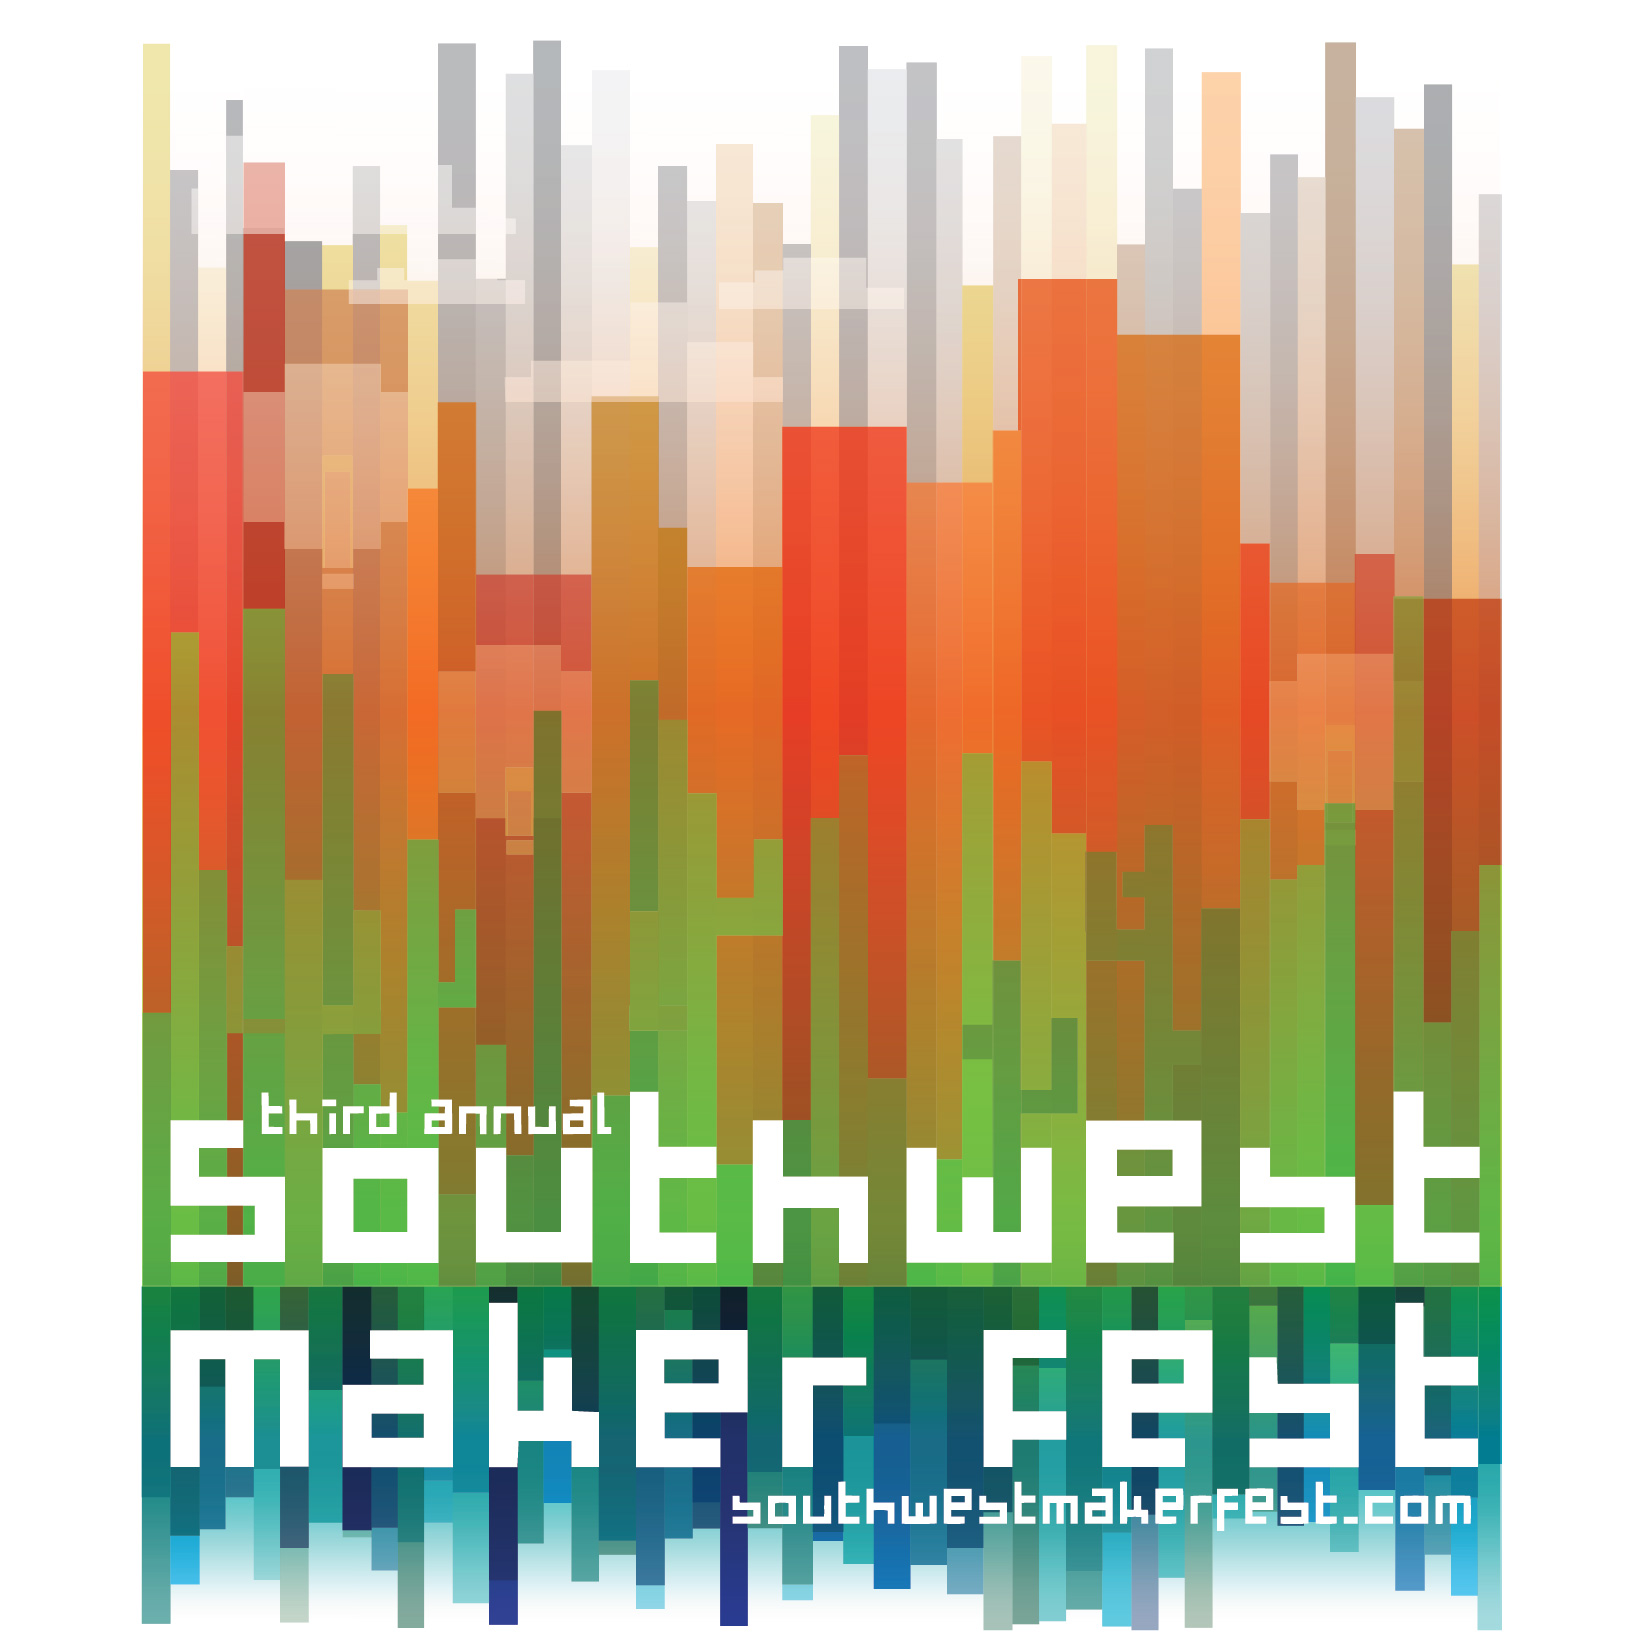 Southwest Maker Fest Poster Design Contest